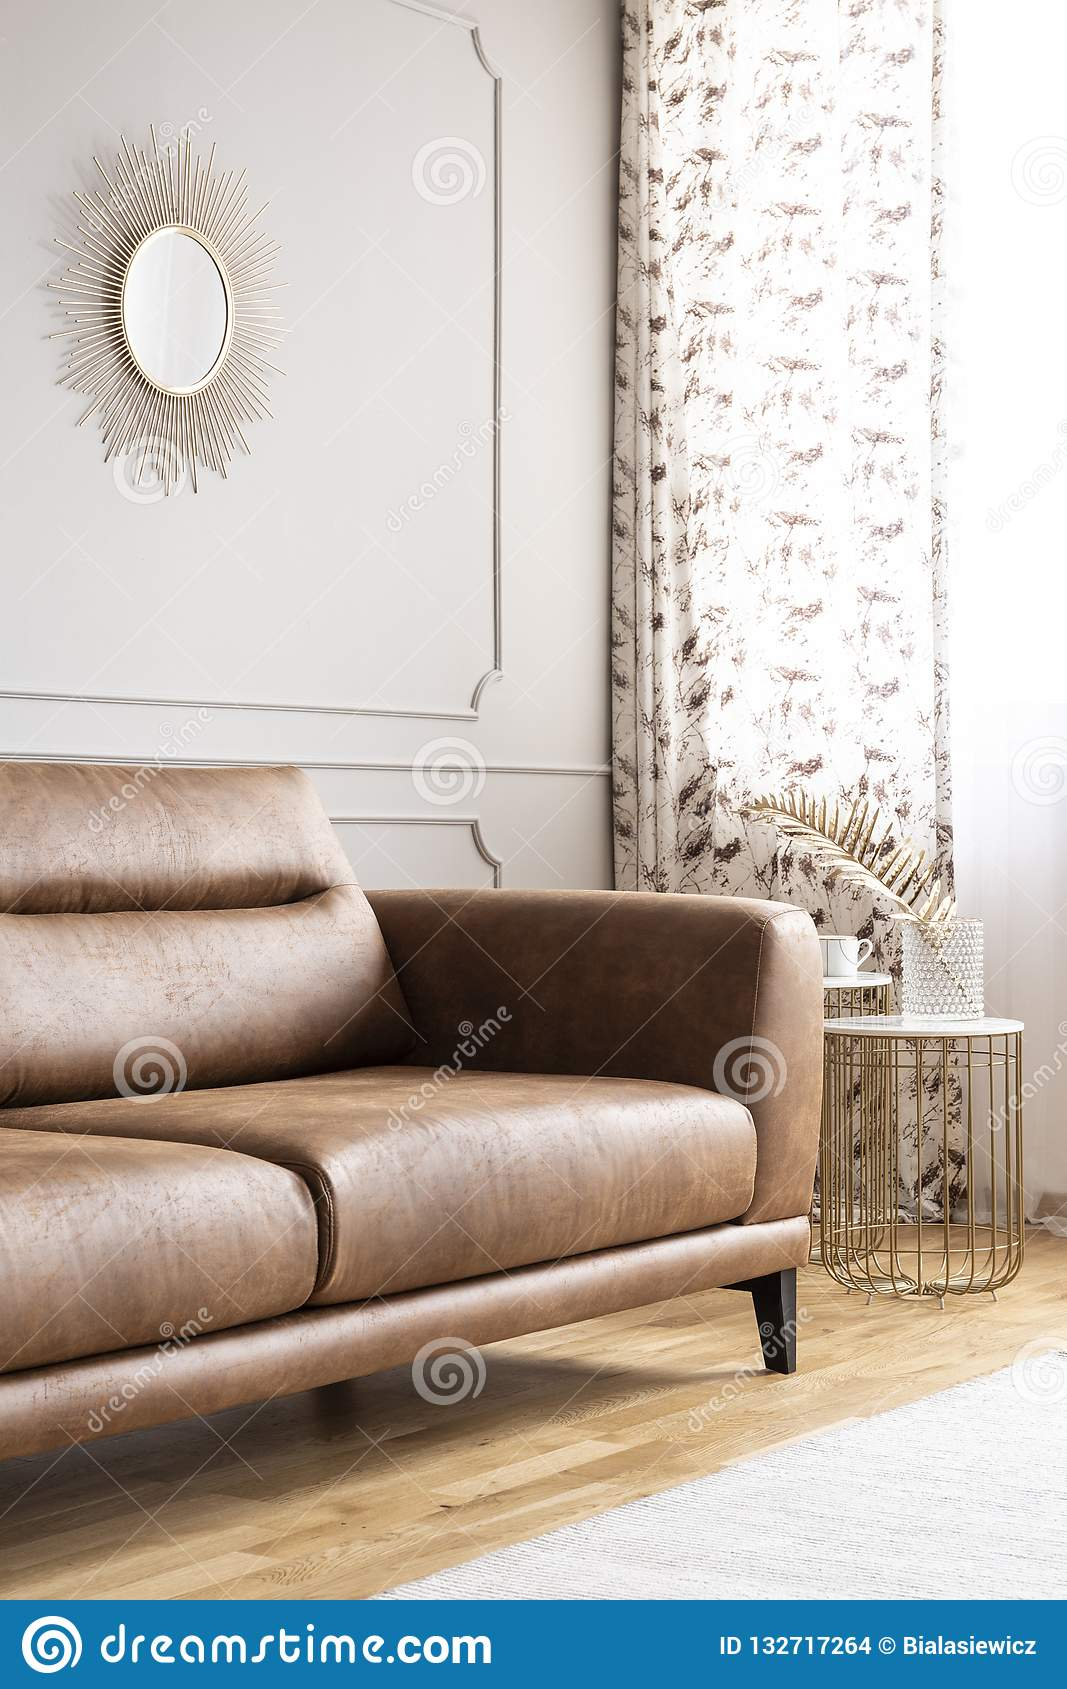 1 406 Curtains Lounge Photos Free Royalty Free Stock Photos From Dreamstime